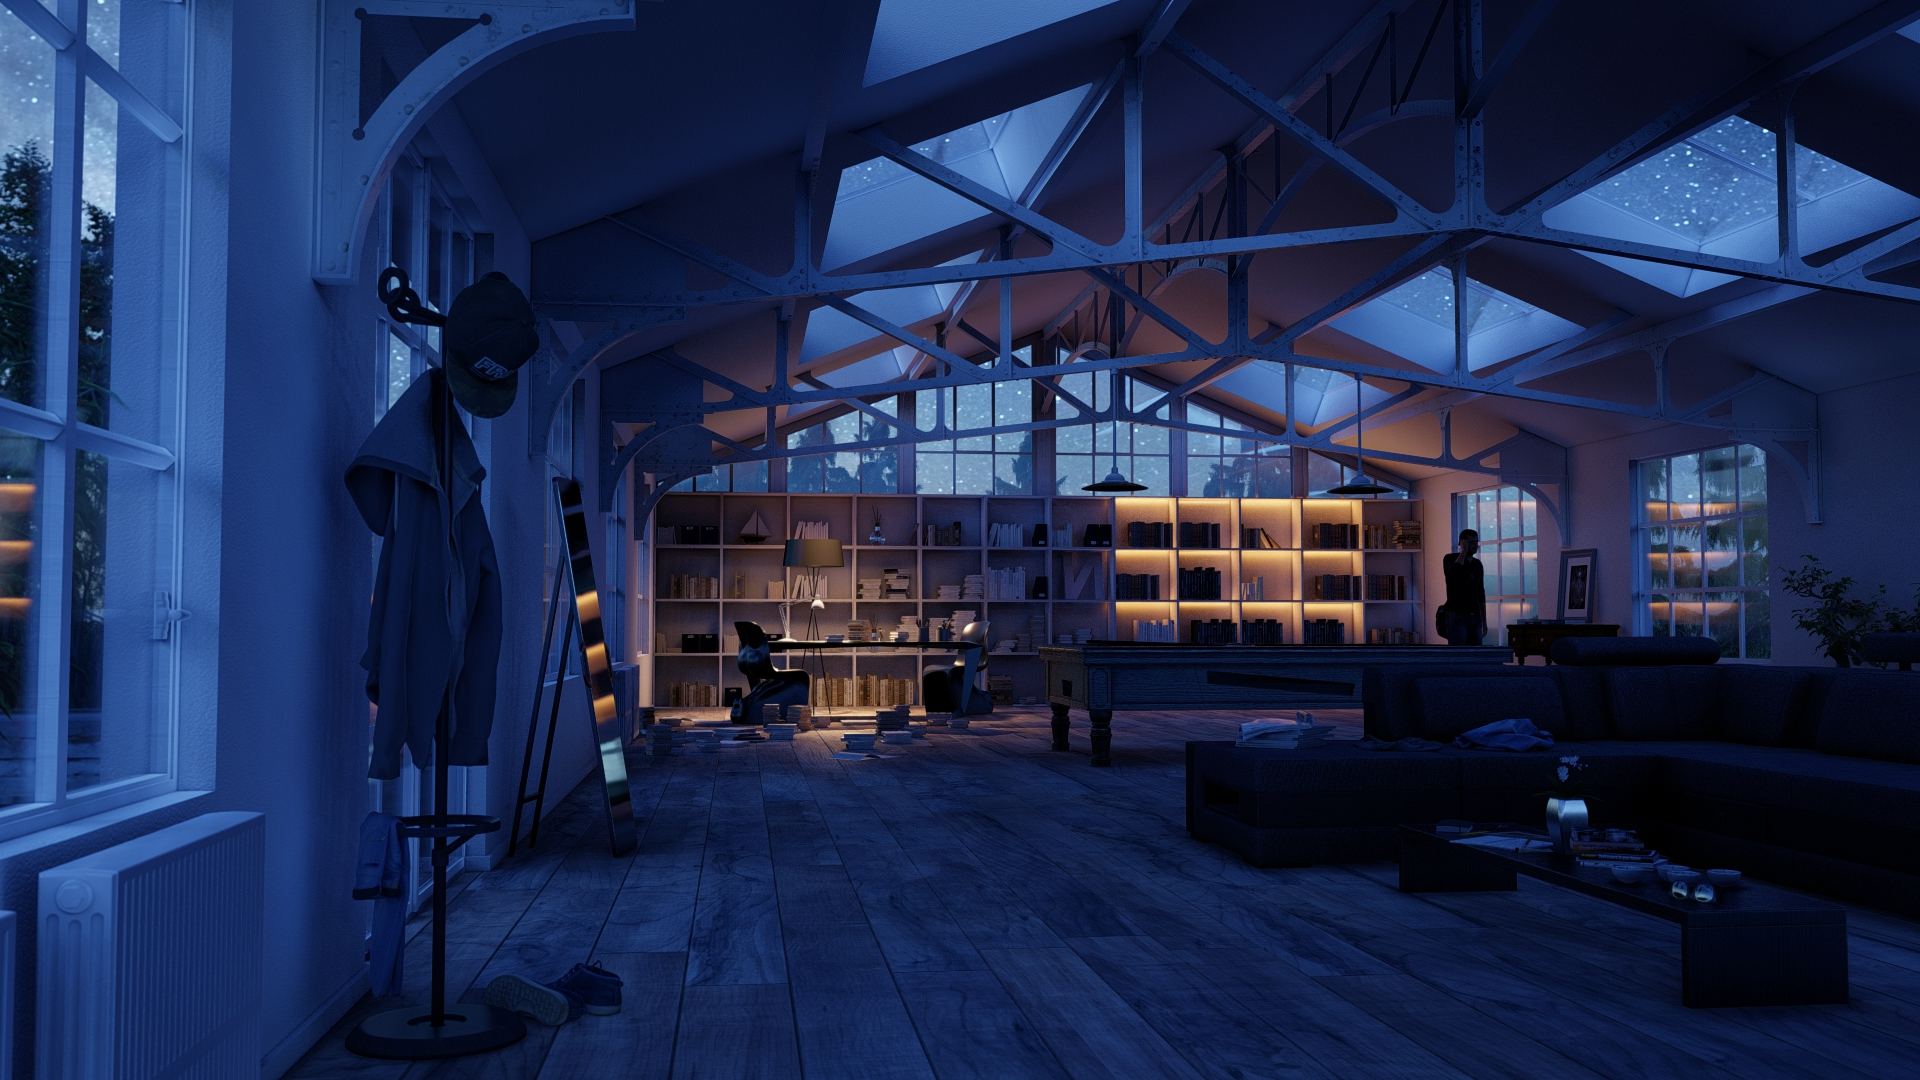 Step-by-step to quickly create this custom interior style (night update)